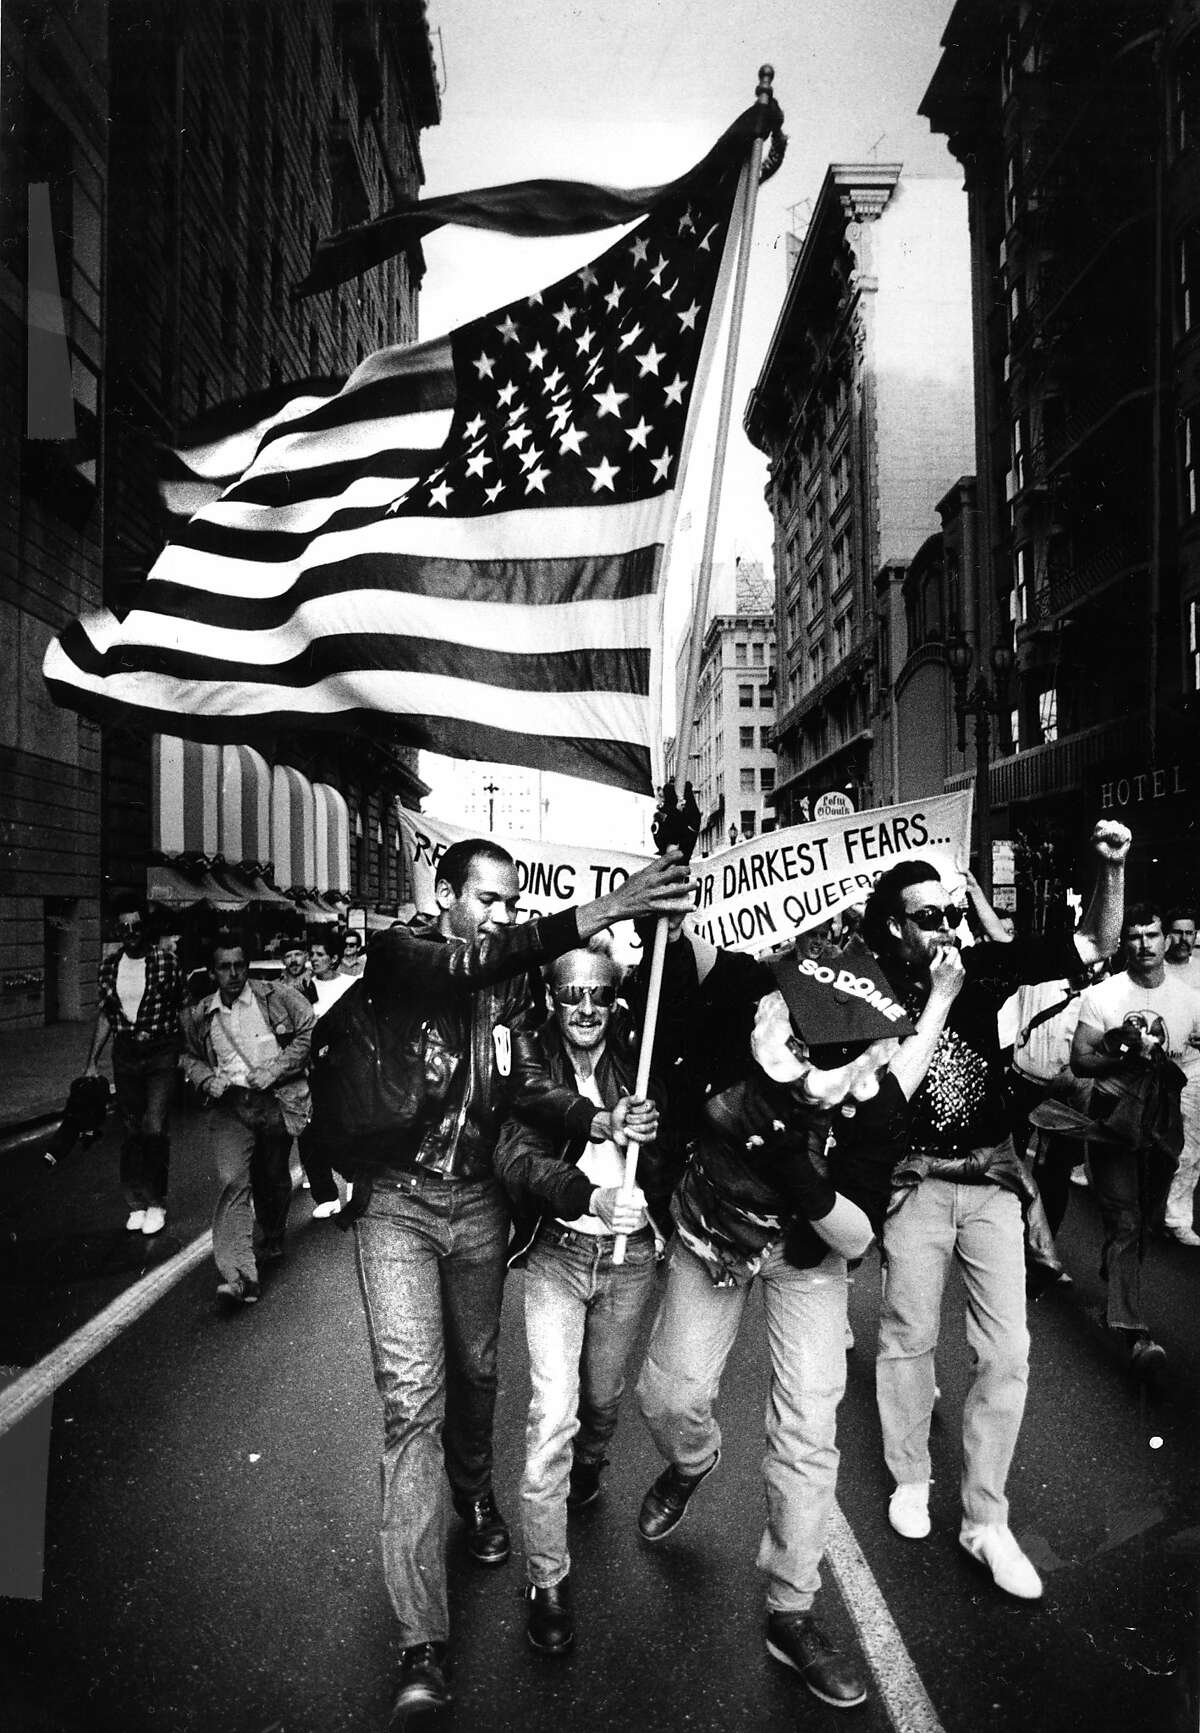 July 17, 1986: Member of San Francisco's gay community protest the Supreme Court's decision to uphold an anti-sodomy law in Georgia.